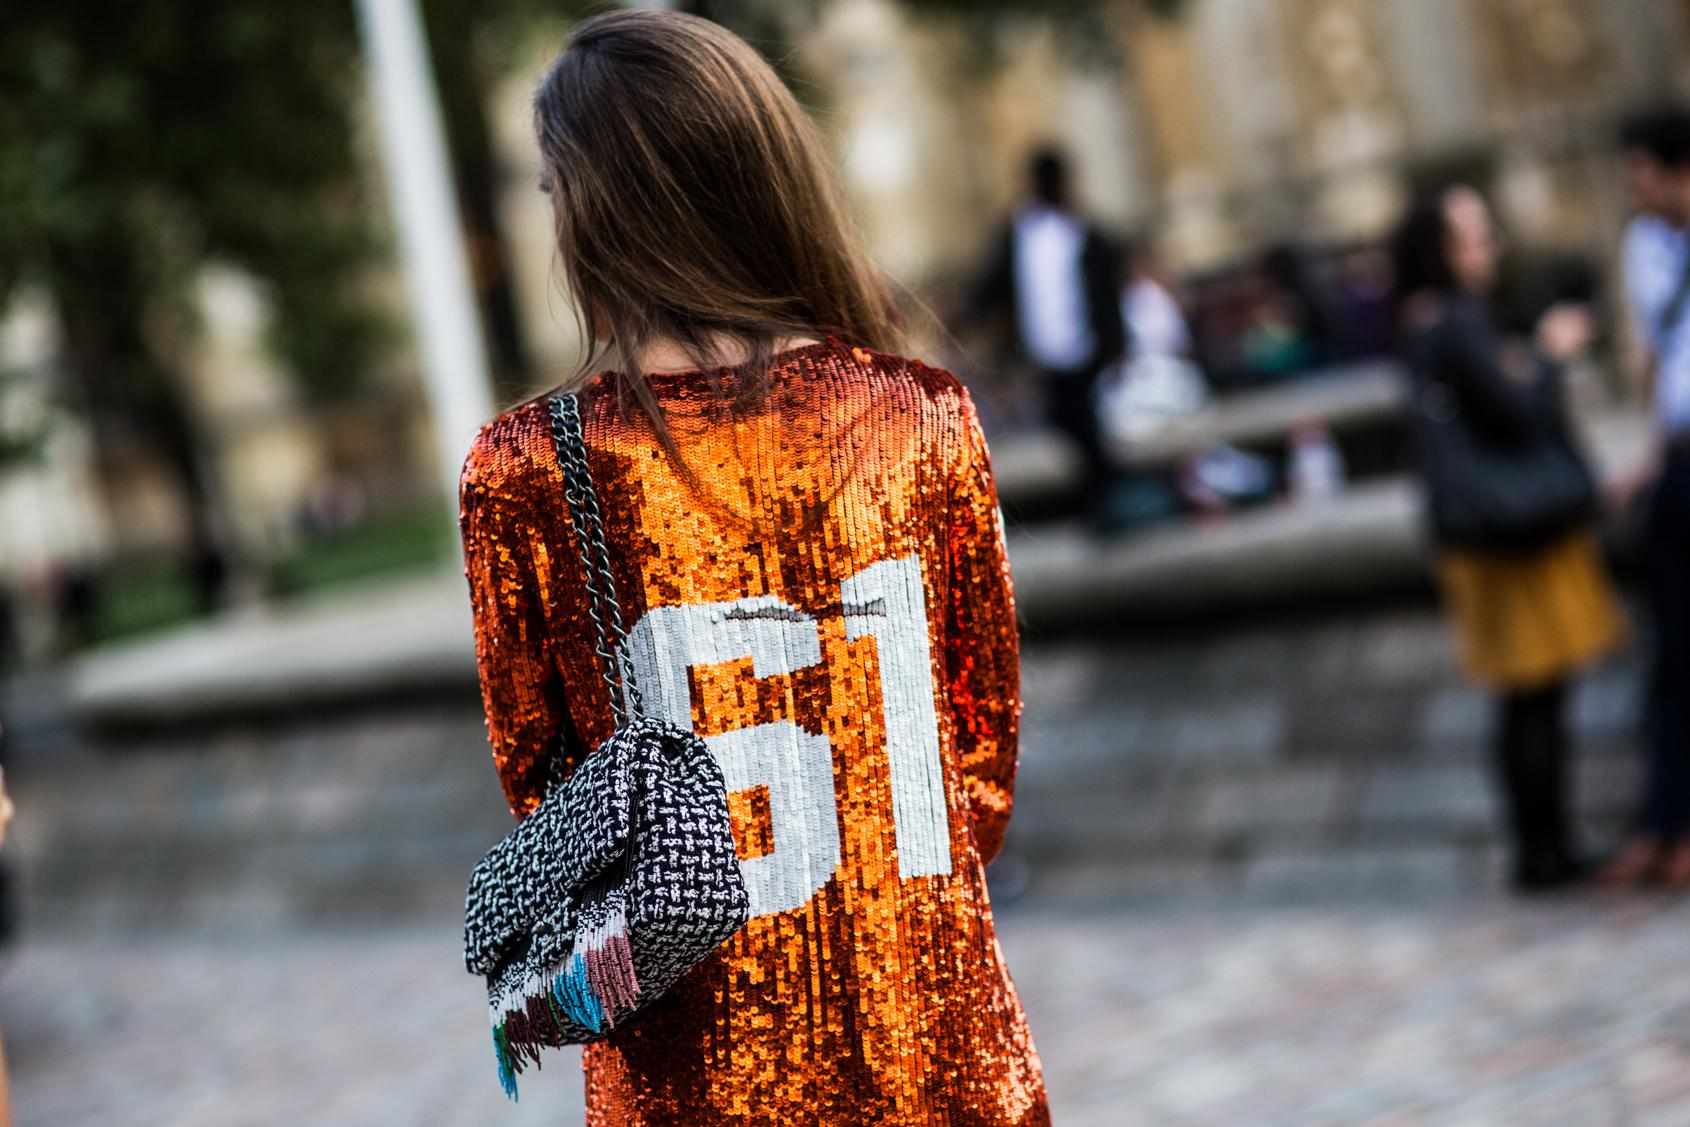 The best street style from London Fashion Week Day 4 -- better than high tea #NYLONfw #lfw: http://t.co/YHeuzN0CkT http://t.co/JBSBDkEvfL